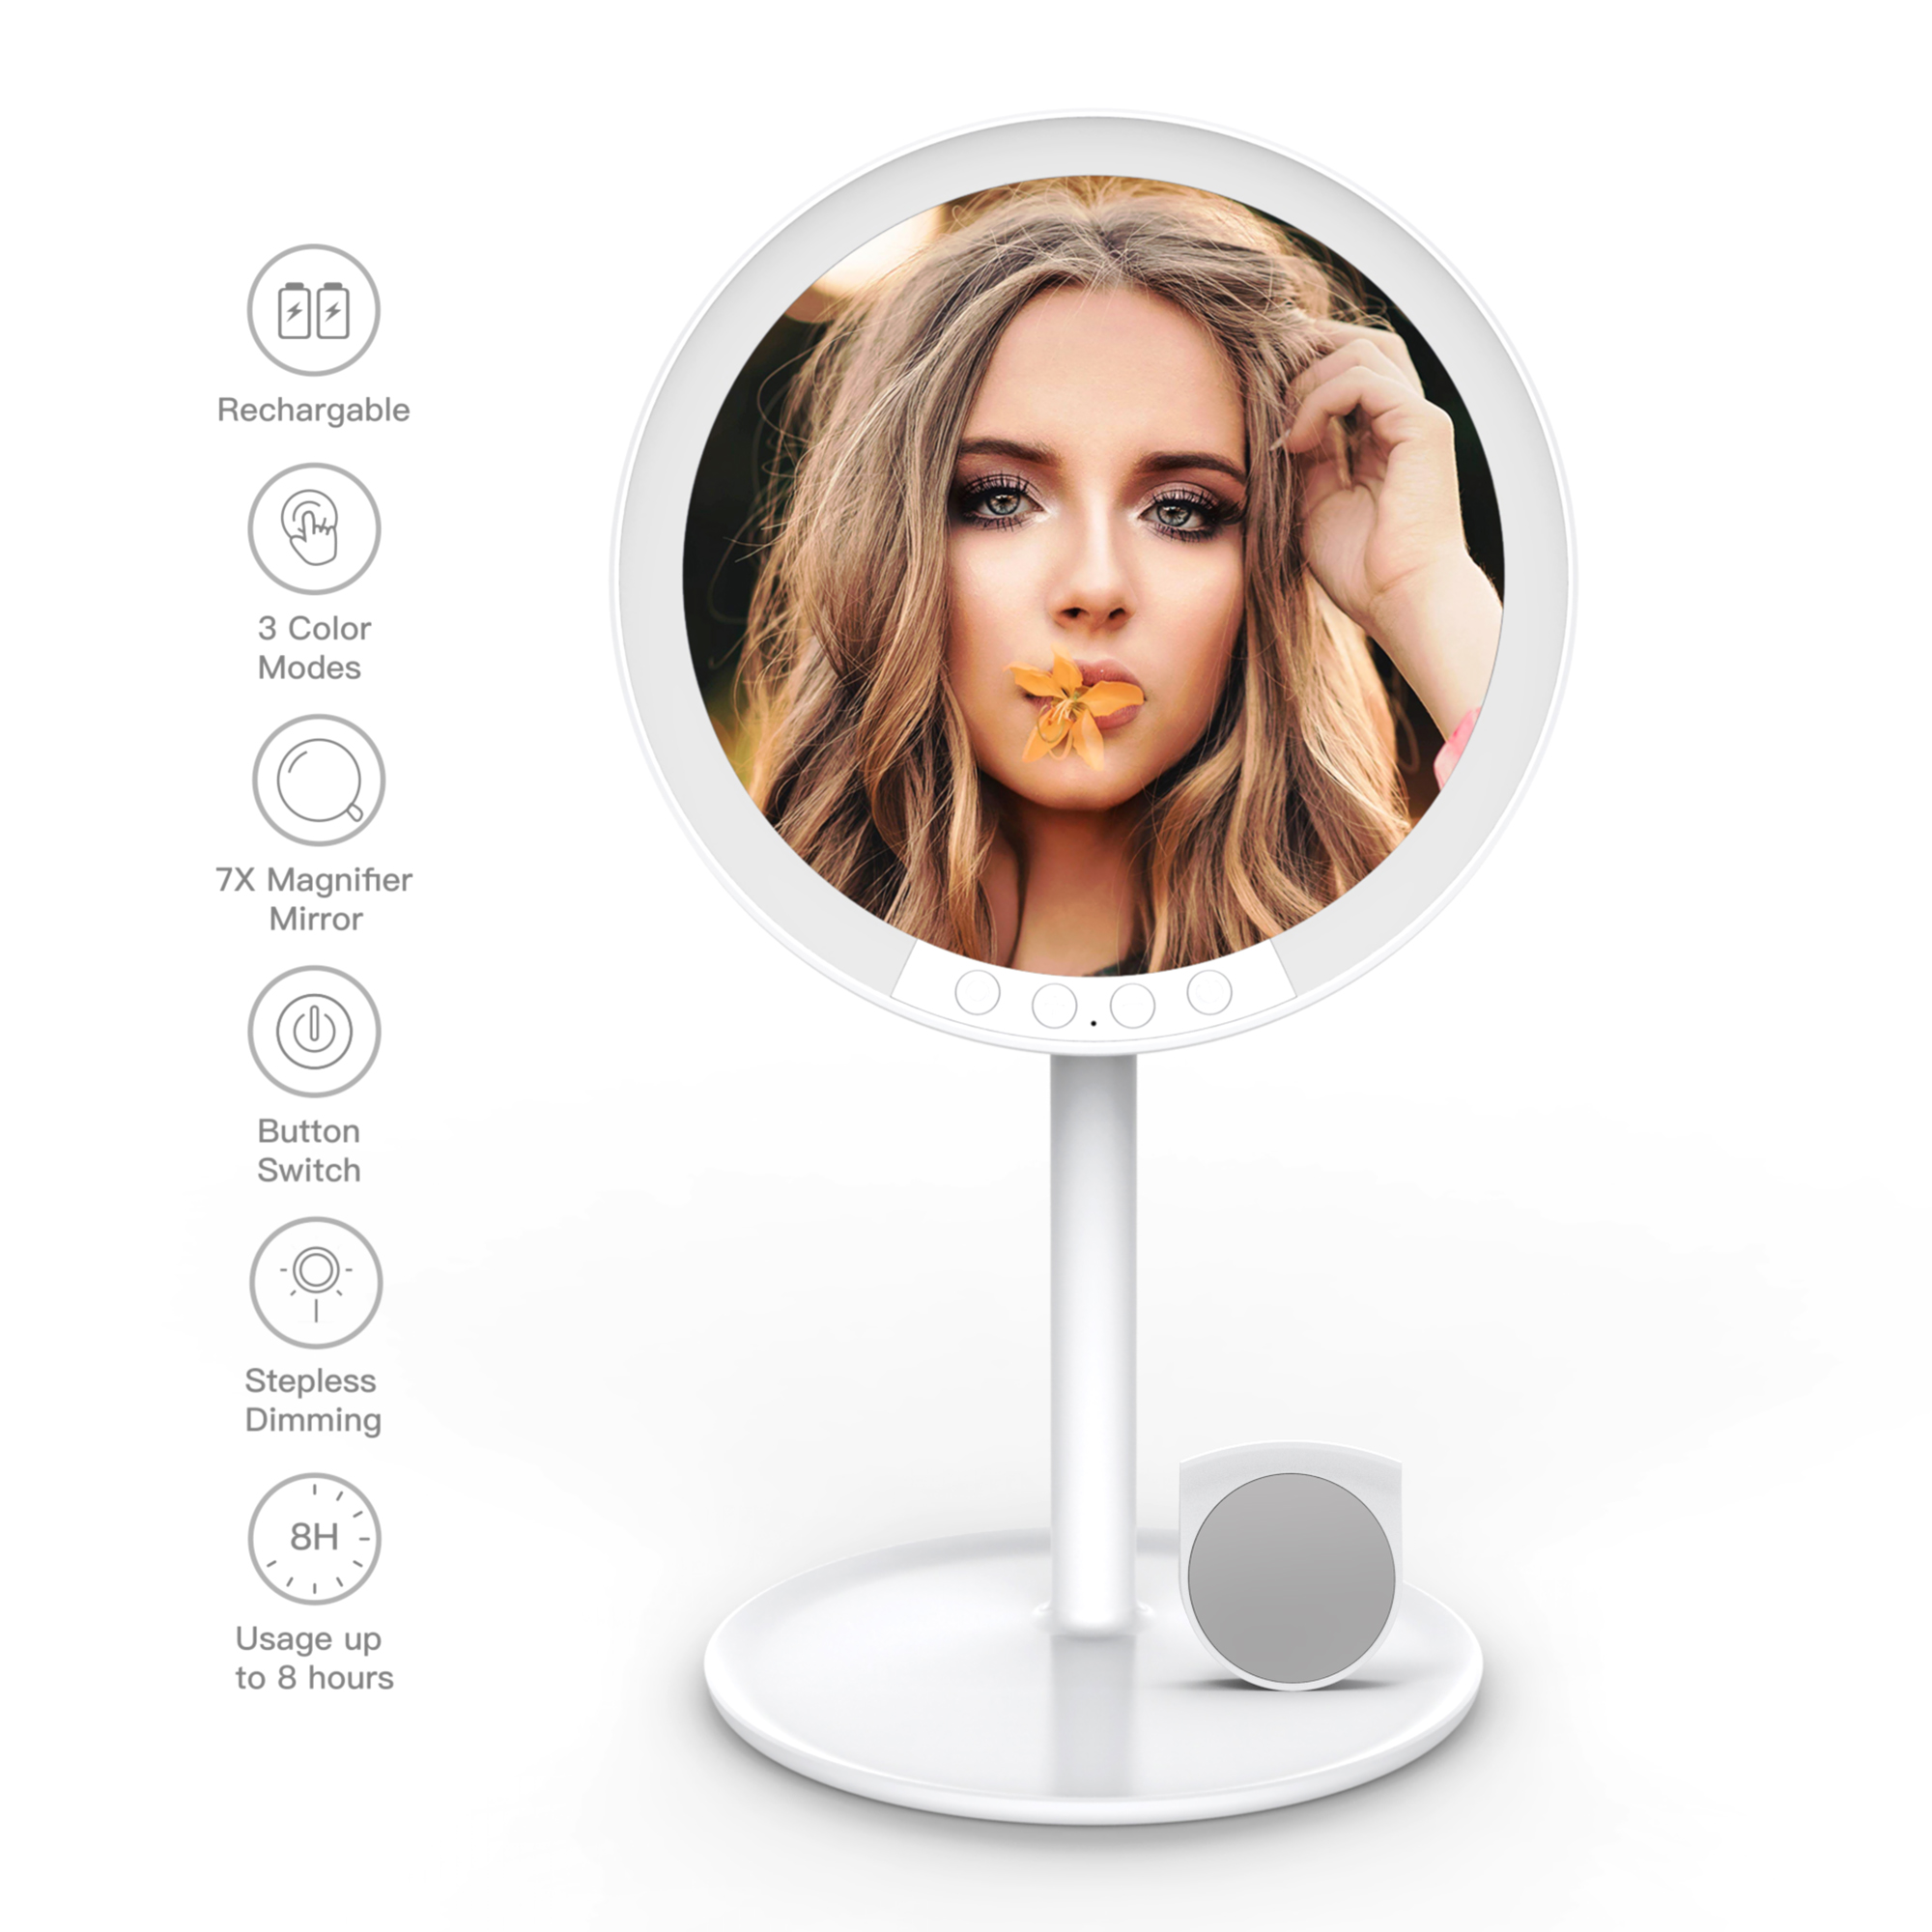 Makeup Vanity Mirror With 66 LED Lights 2000mah Rechargeable, 180 Degree Rotation,1x-10x Magnifying With Stand And Travel Mirror